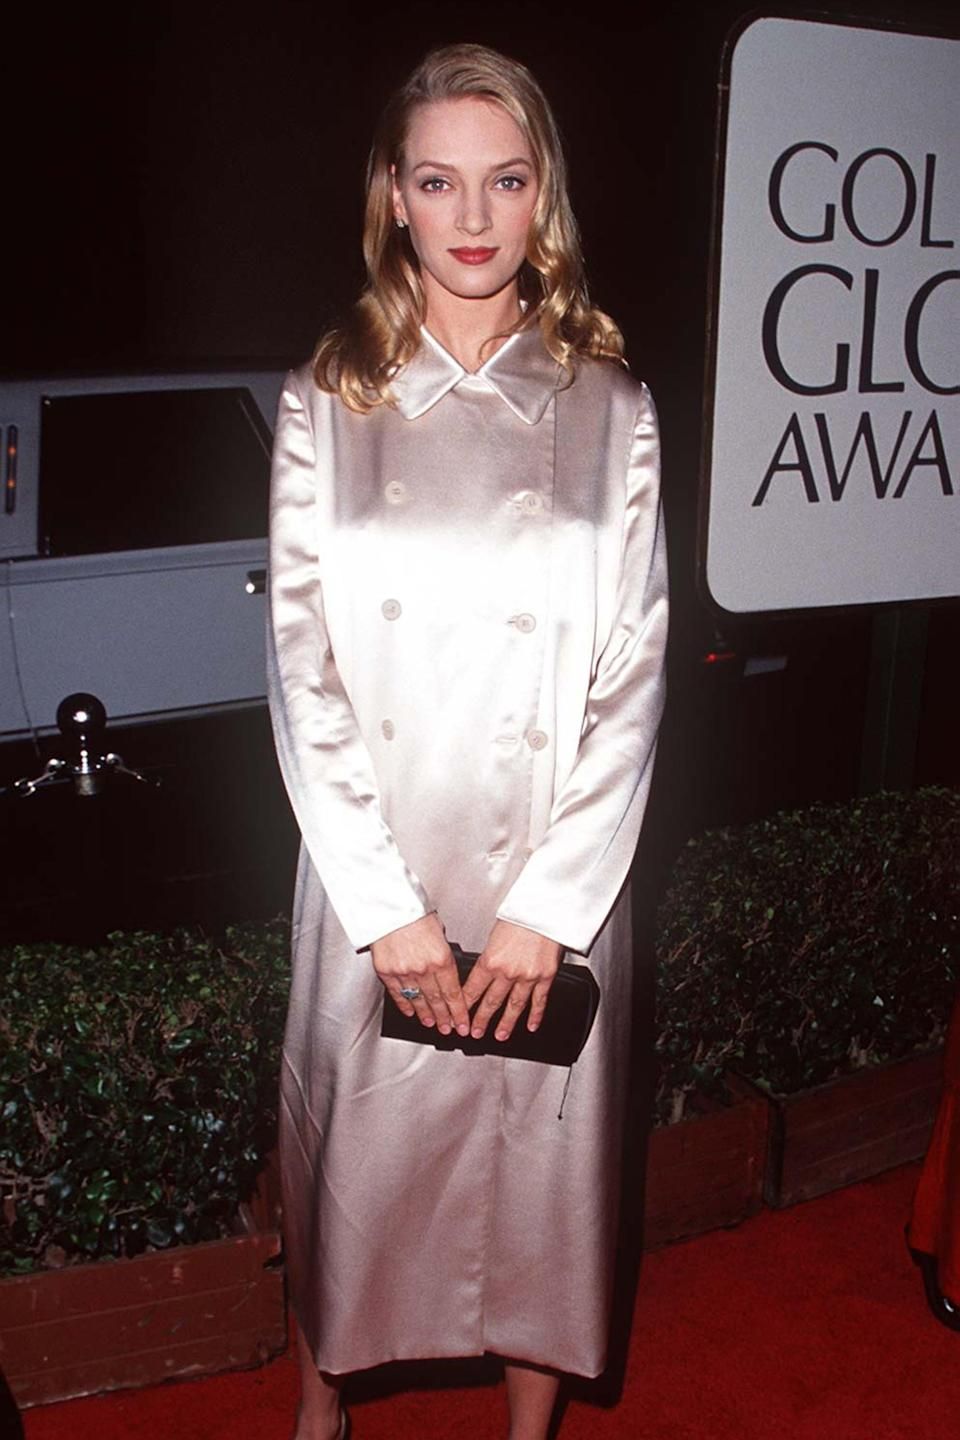 """<strong><h2>1995</h2></strong><br>We're always keen on a red carpet look that goes against the grain, so naturally, Uma Thurman showing up to the Golden Globes in this classic satin coat instead of a dress has us bowing our hats.<br><br><em>Uma Thurman in a white coat. </em><span class=""""copyright"""">Photo: Steve Granitz/WireImage.</span>"""